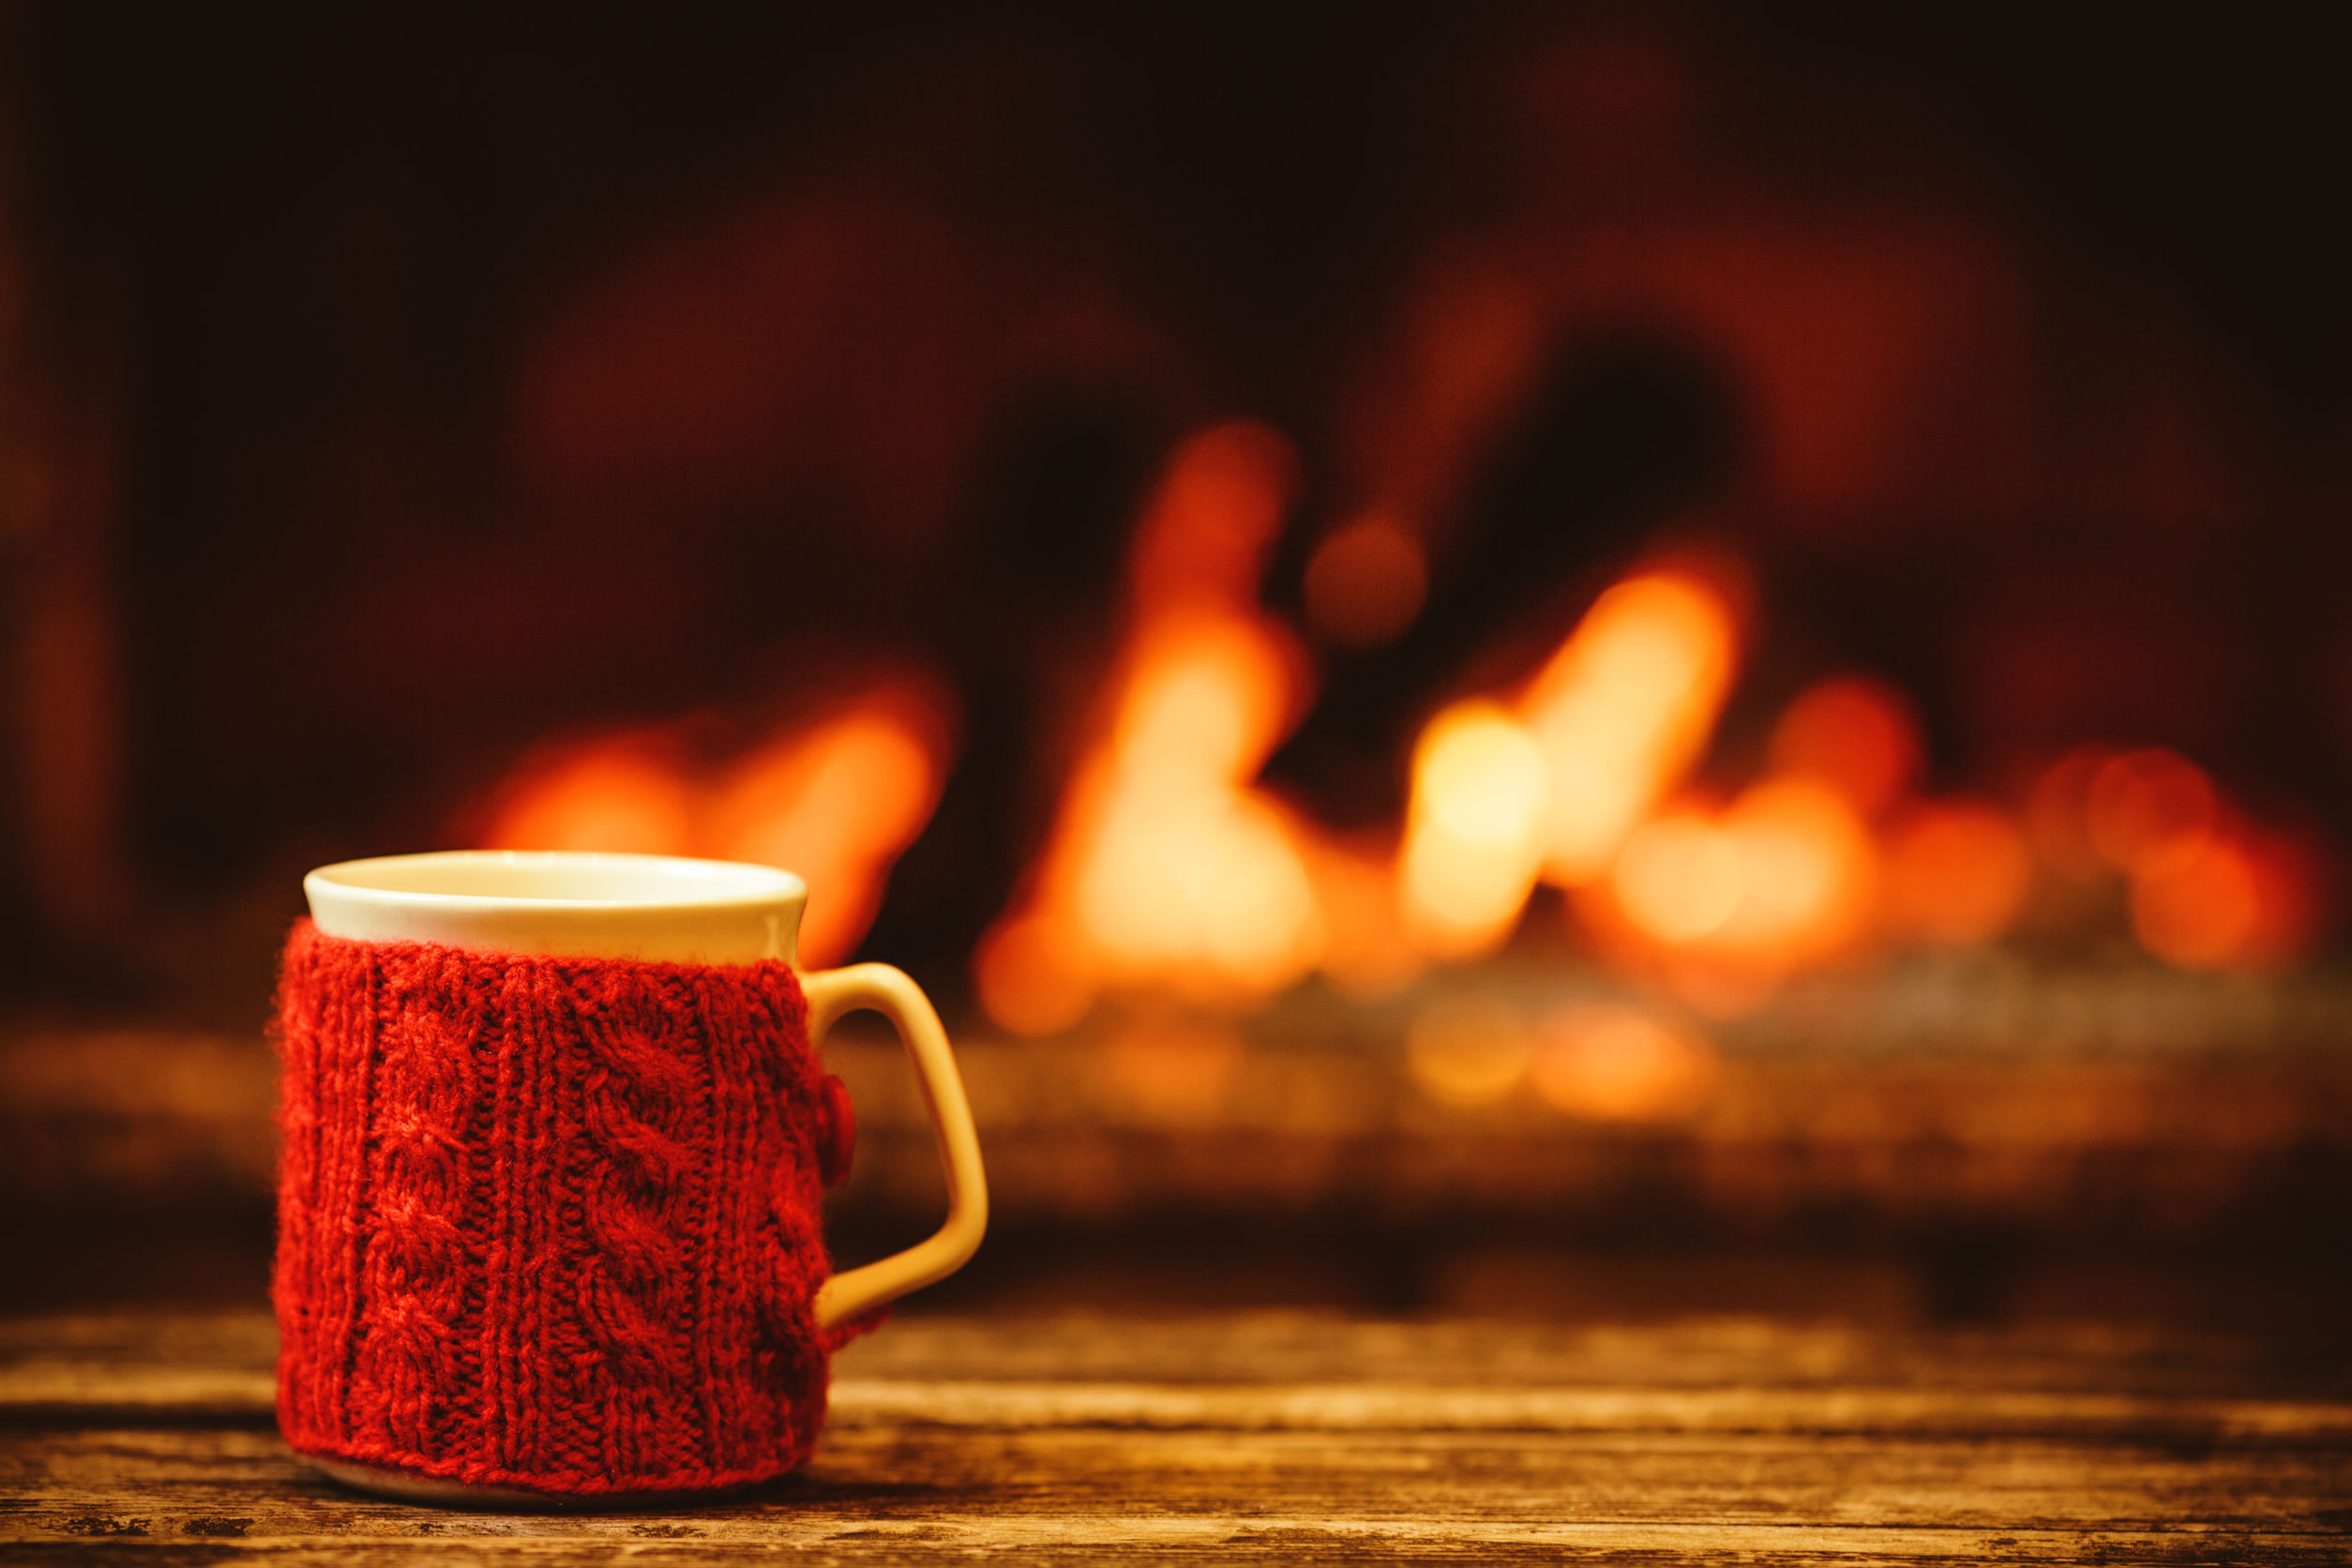 cup in front of fireplace